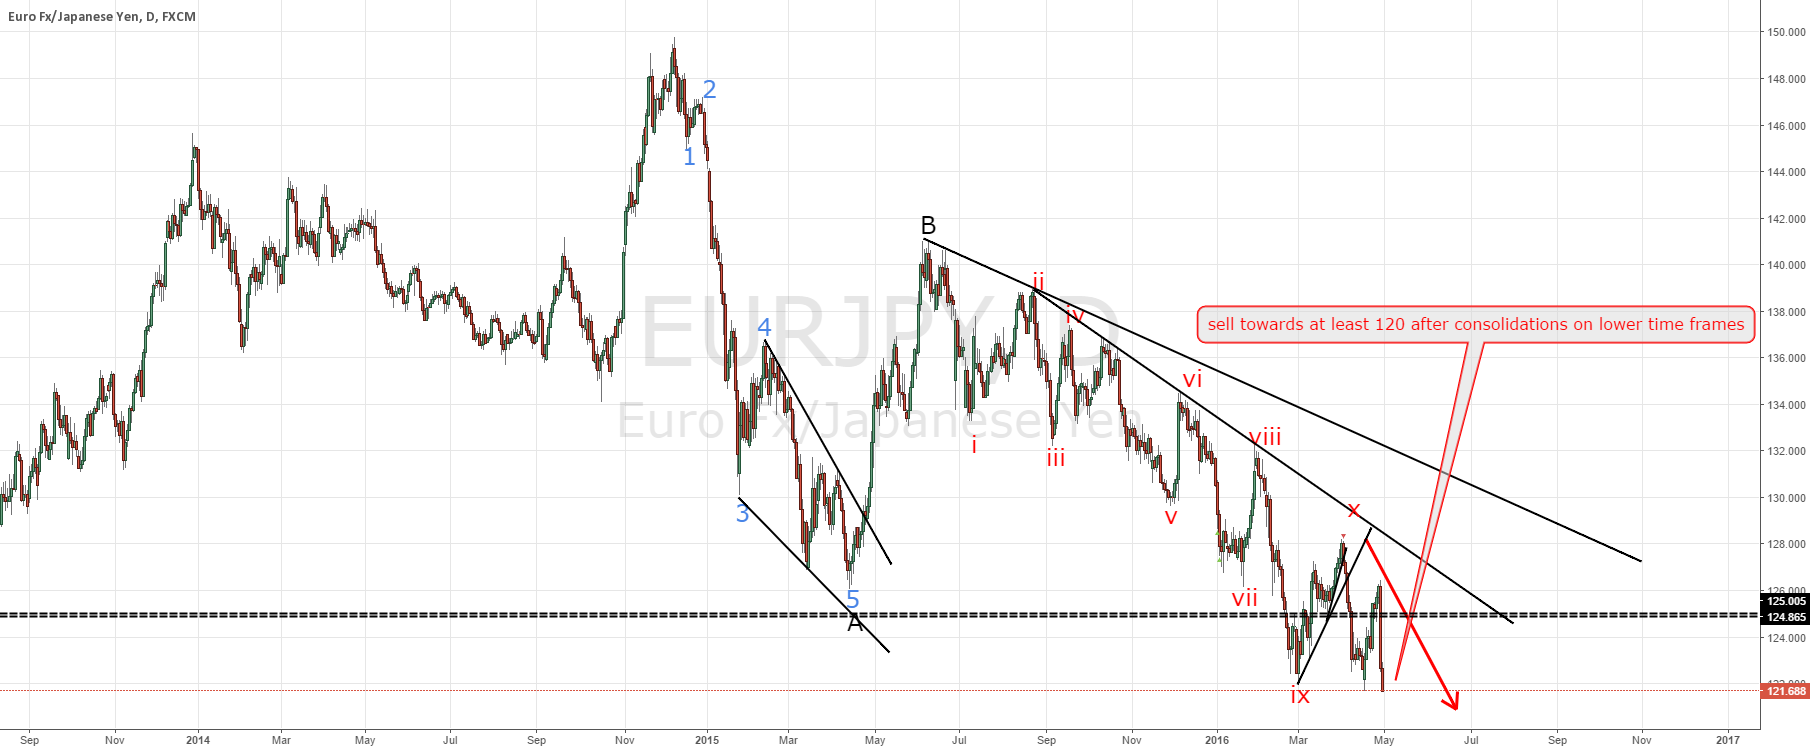 EURJPY sell towards at least 120